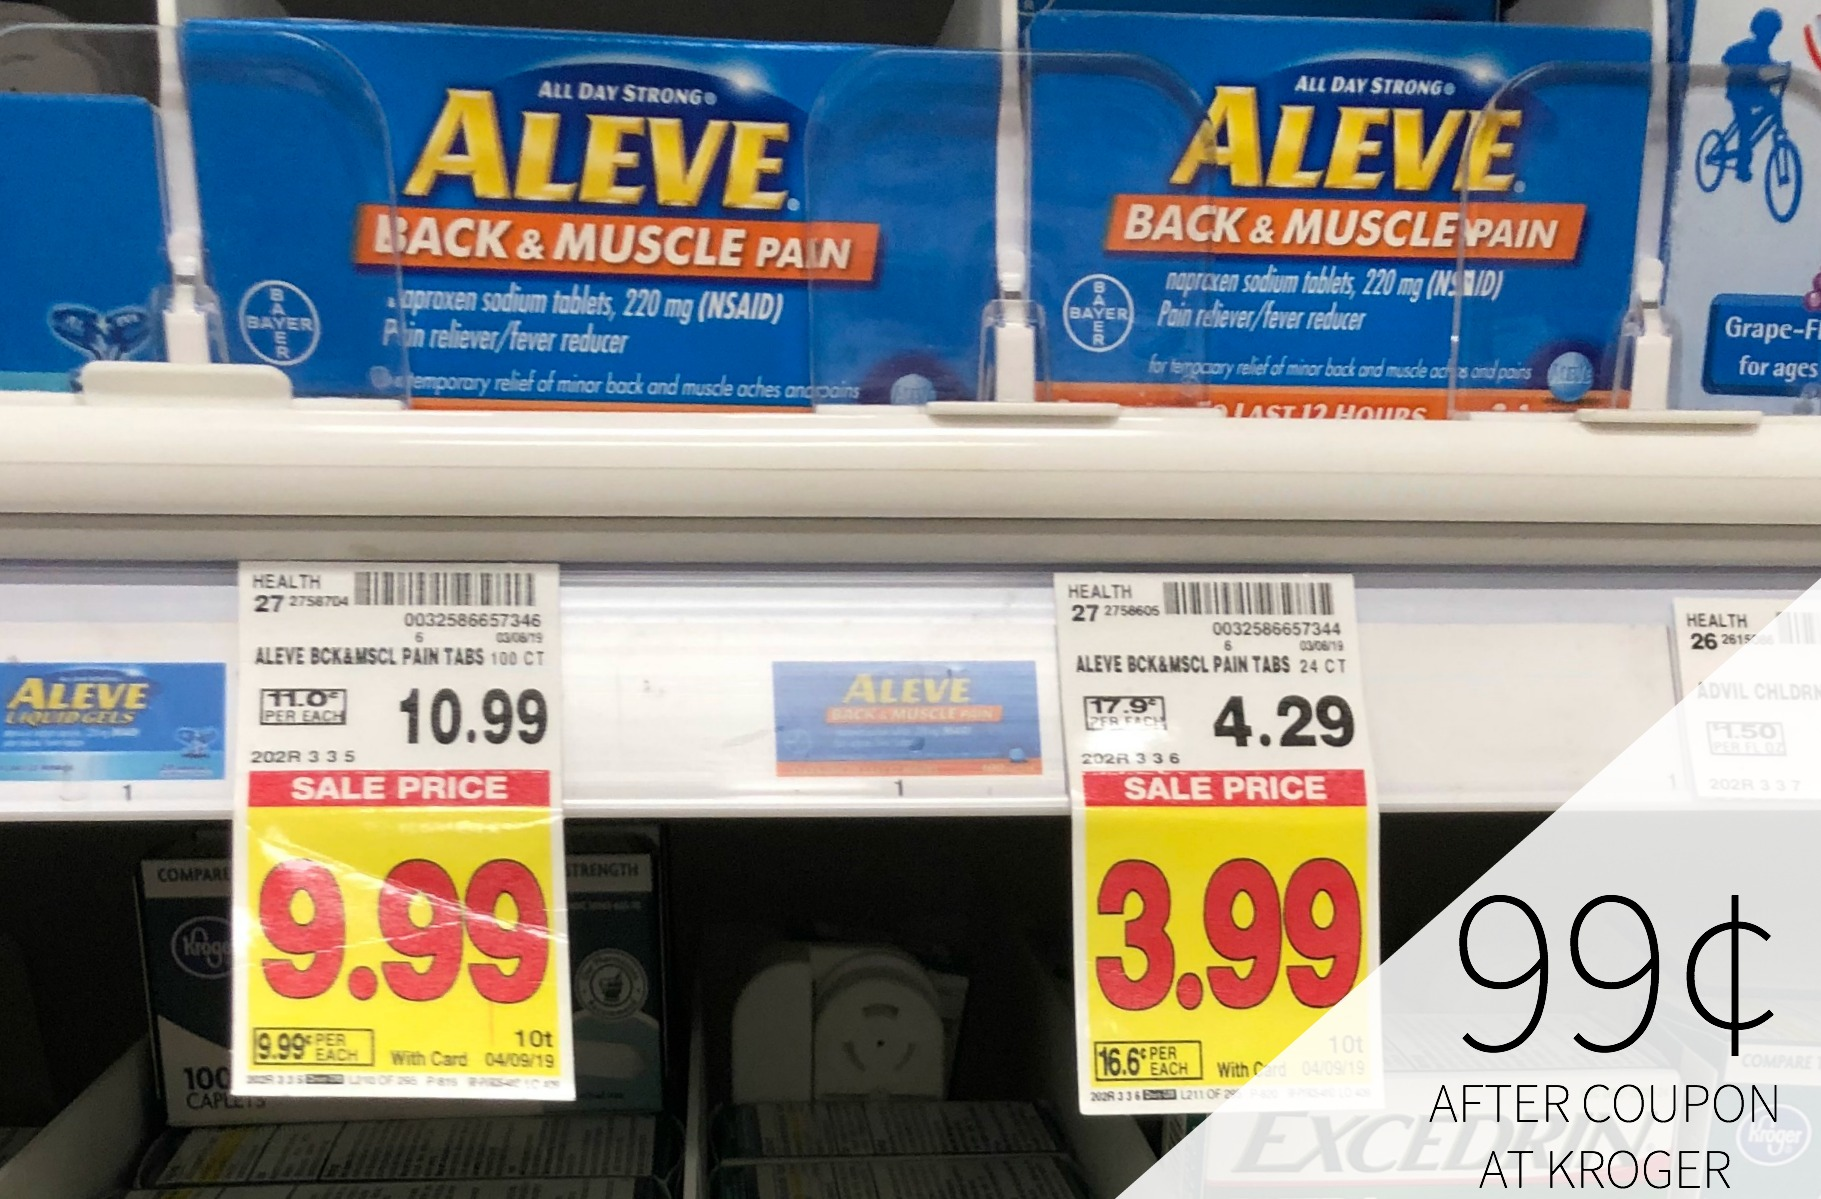 Aleve Back & Muscle Pain Just 99¢ At Kroger